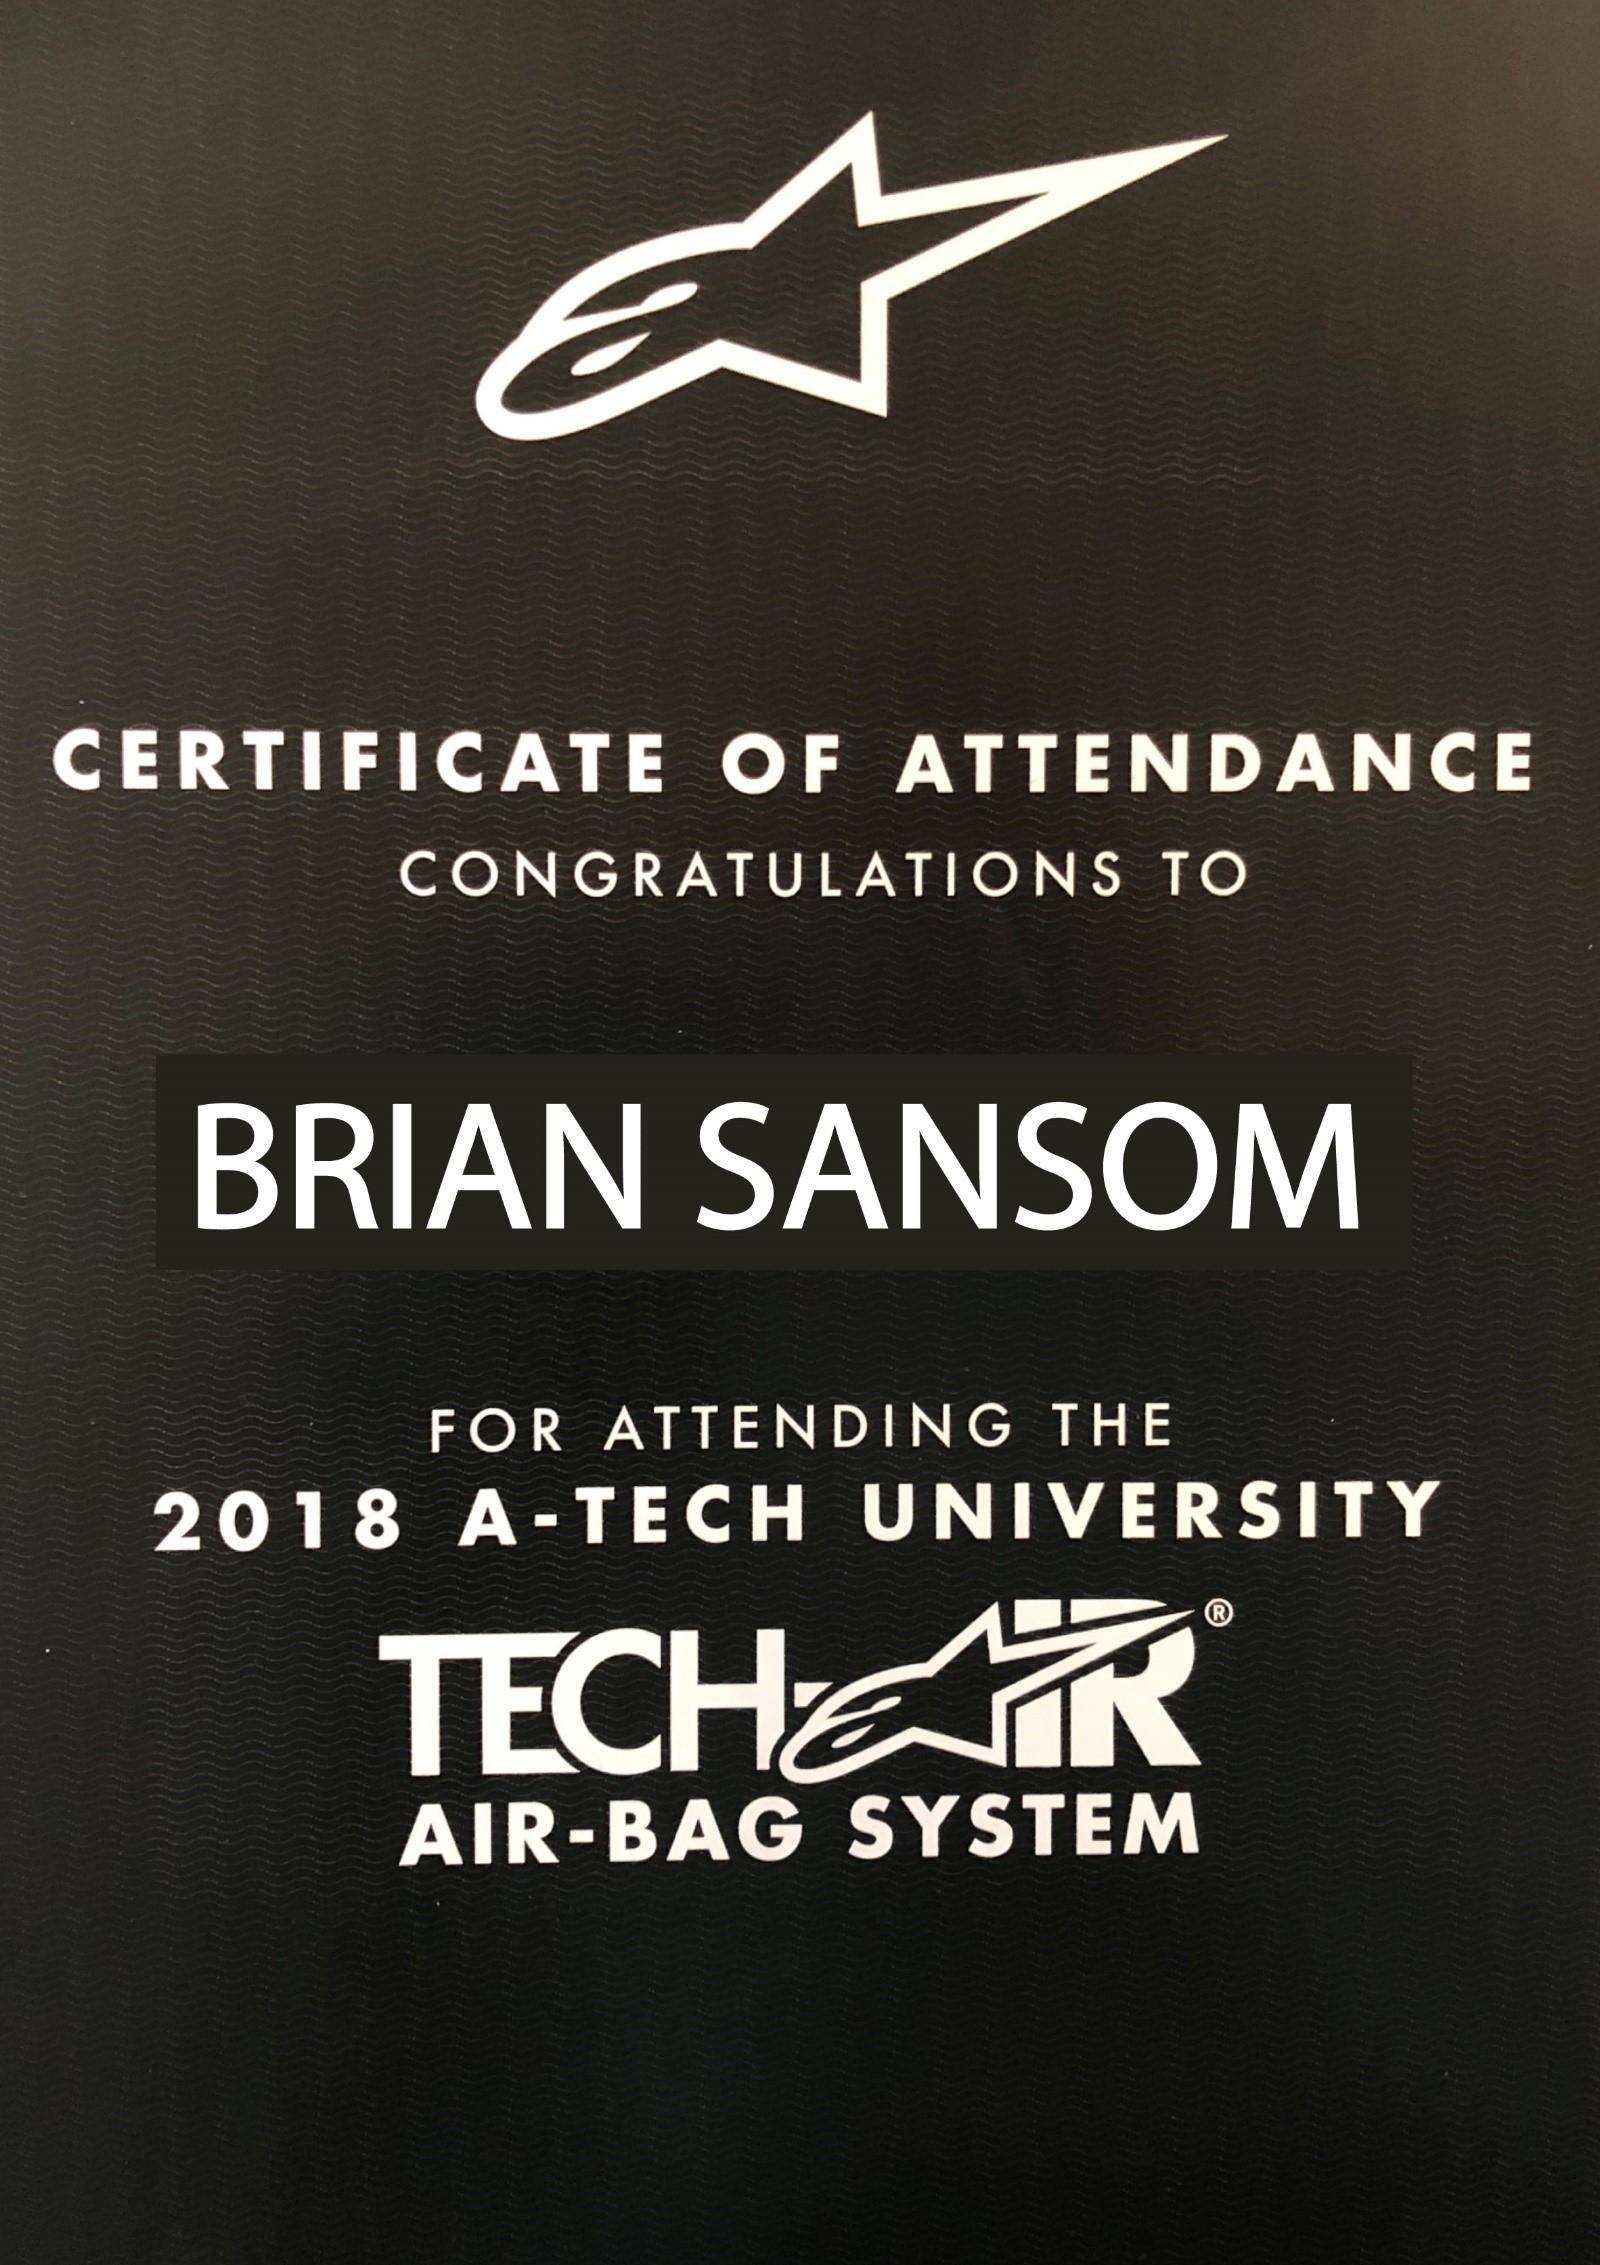 Certificate of attendance Tech Air Aplinestars 2018 A-Tech university